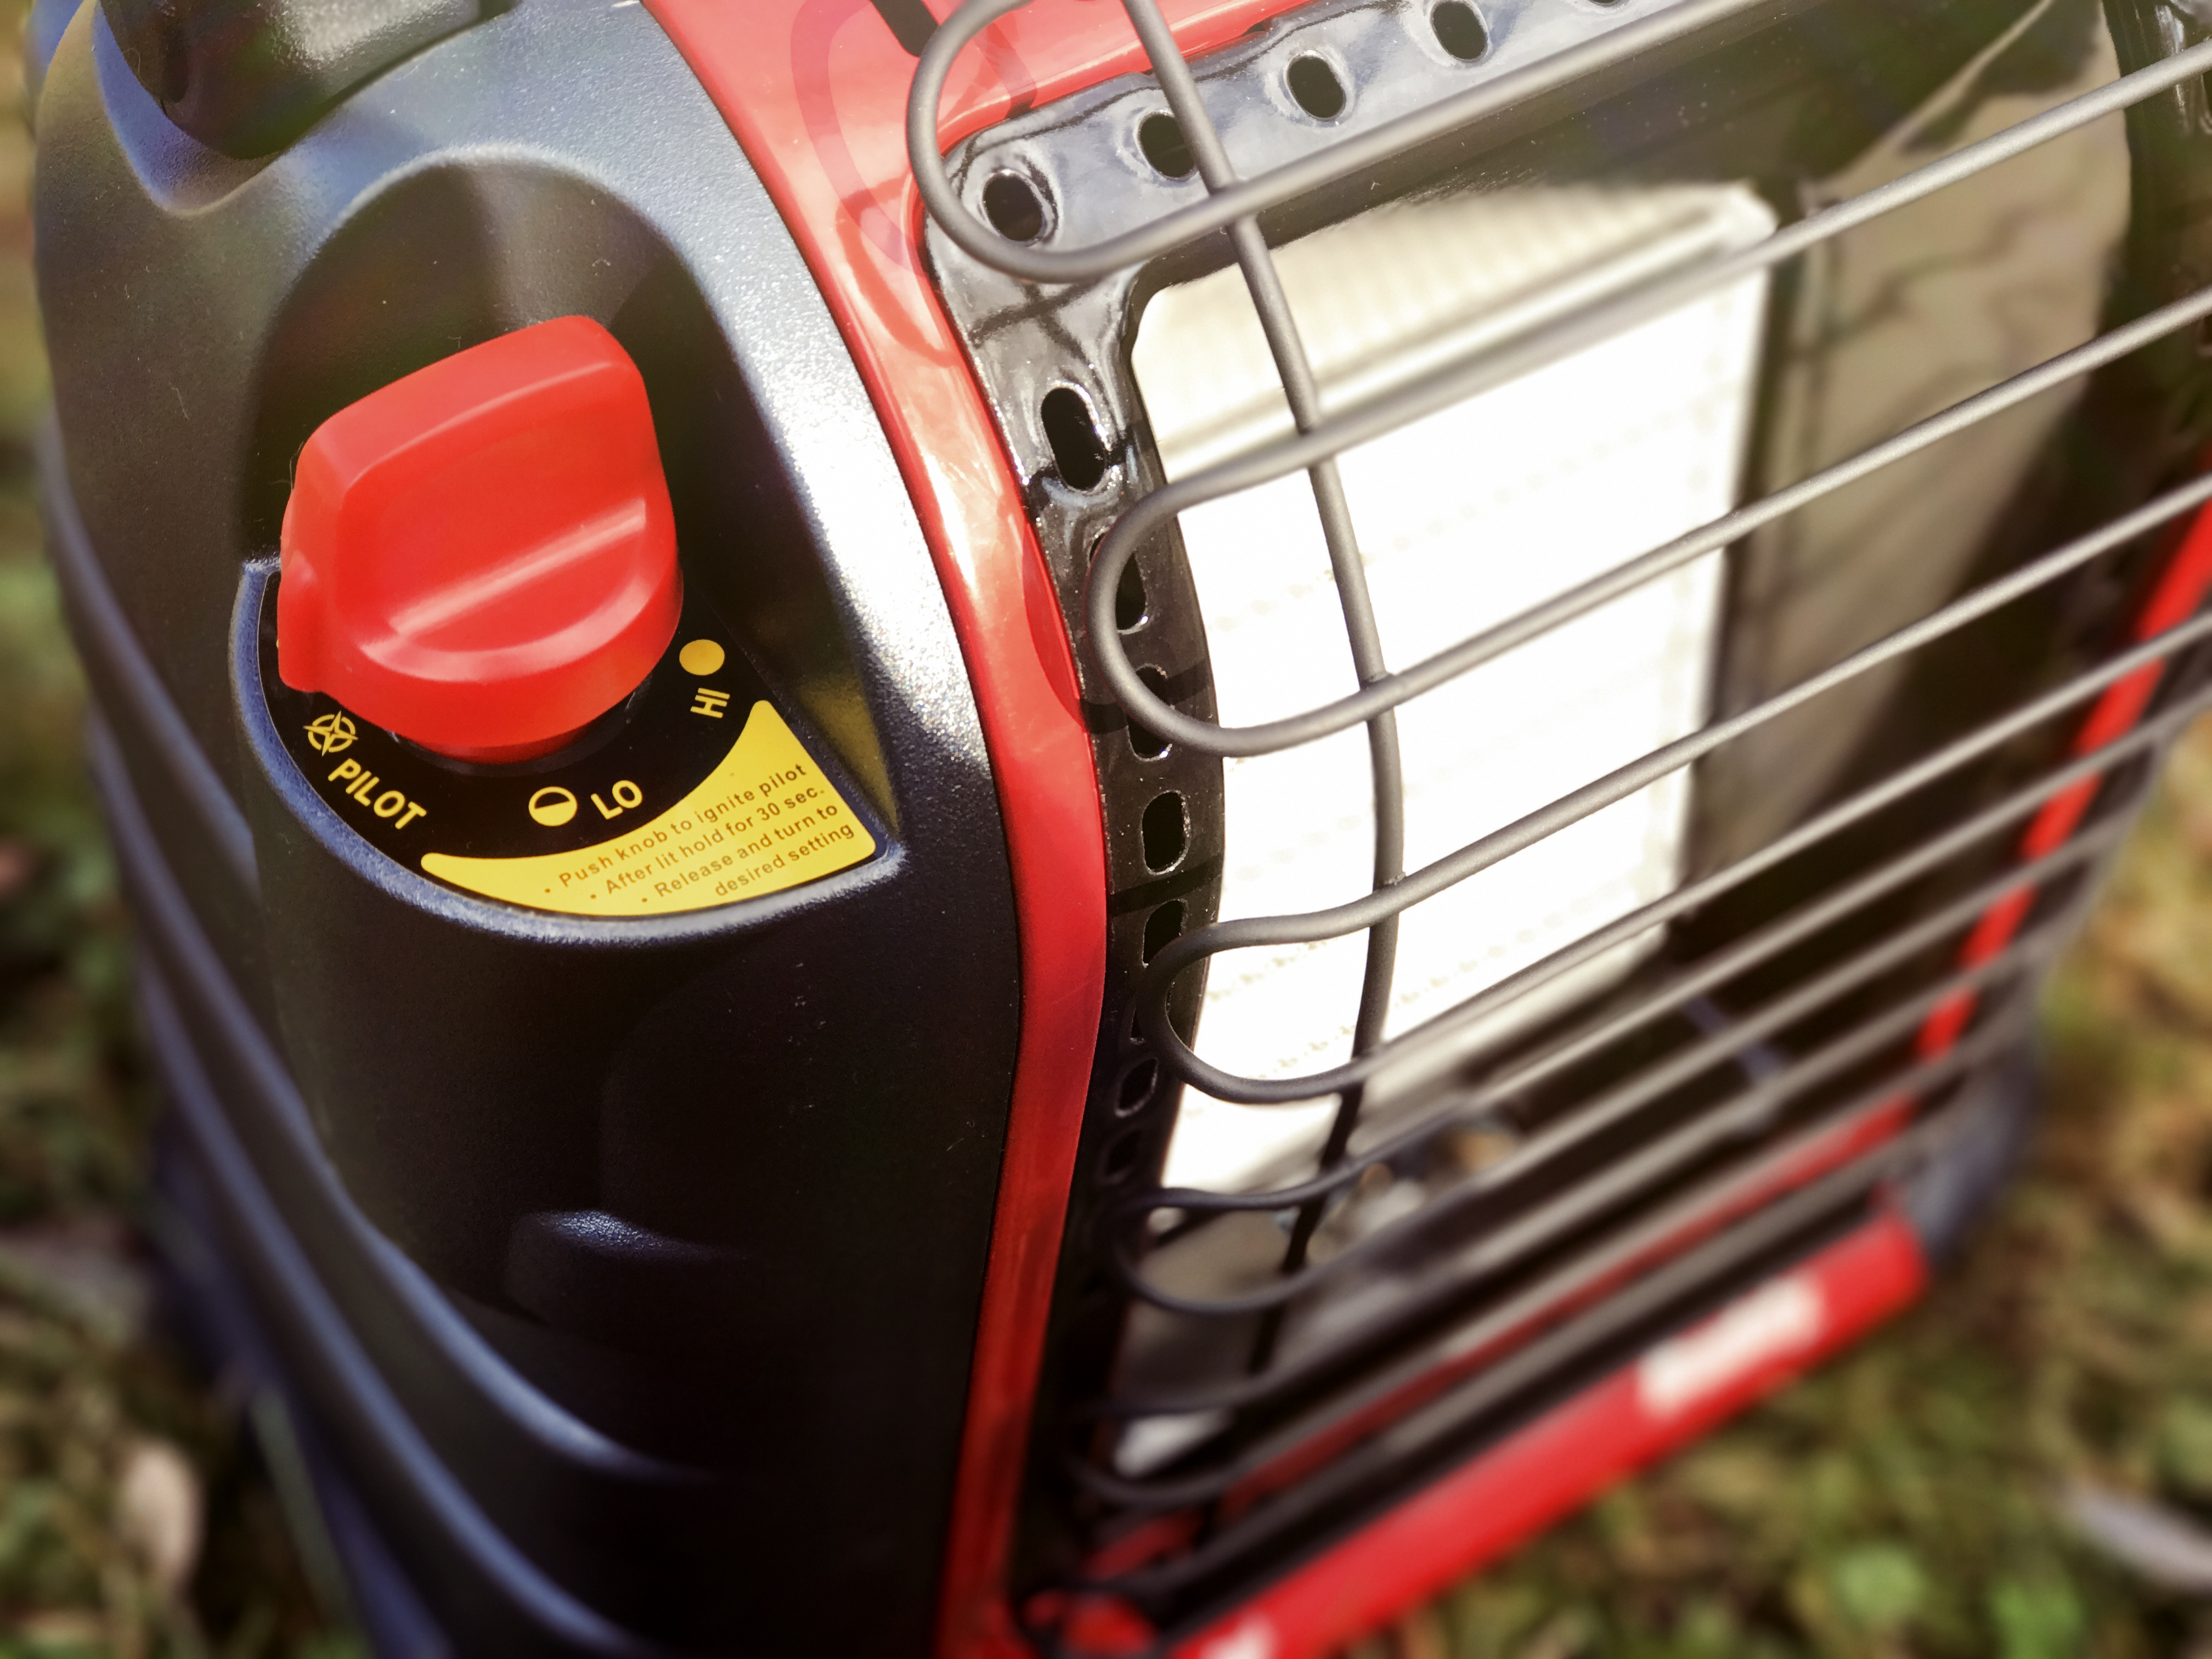 Blog How To Camping With The Portable Buddy Heater